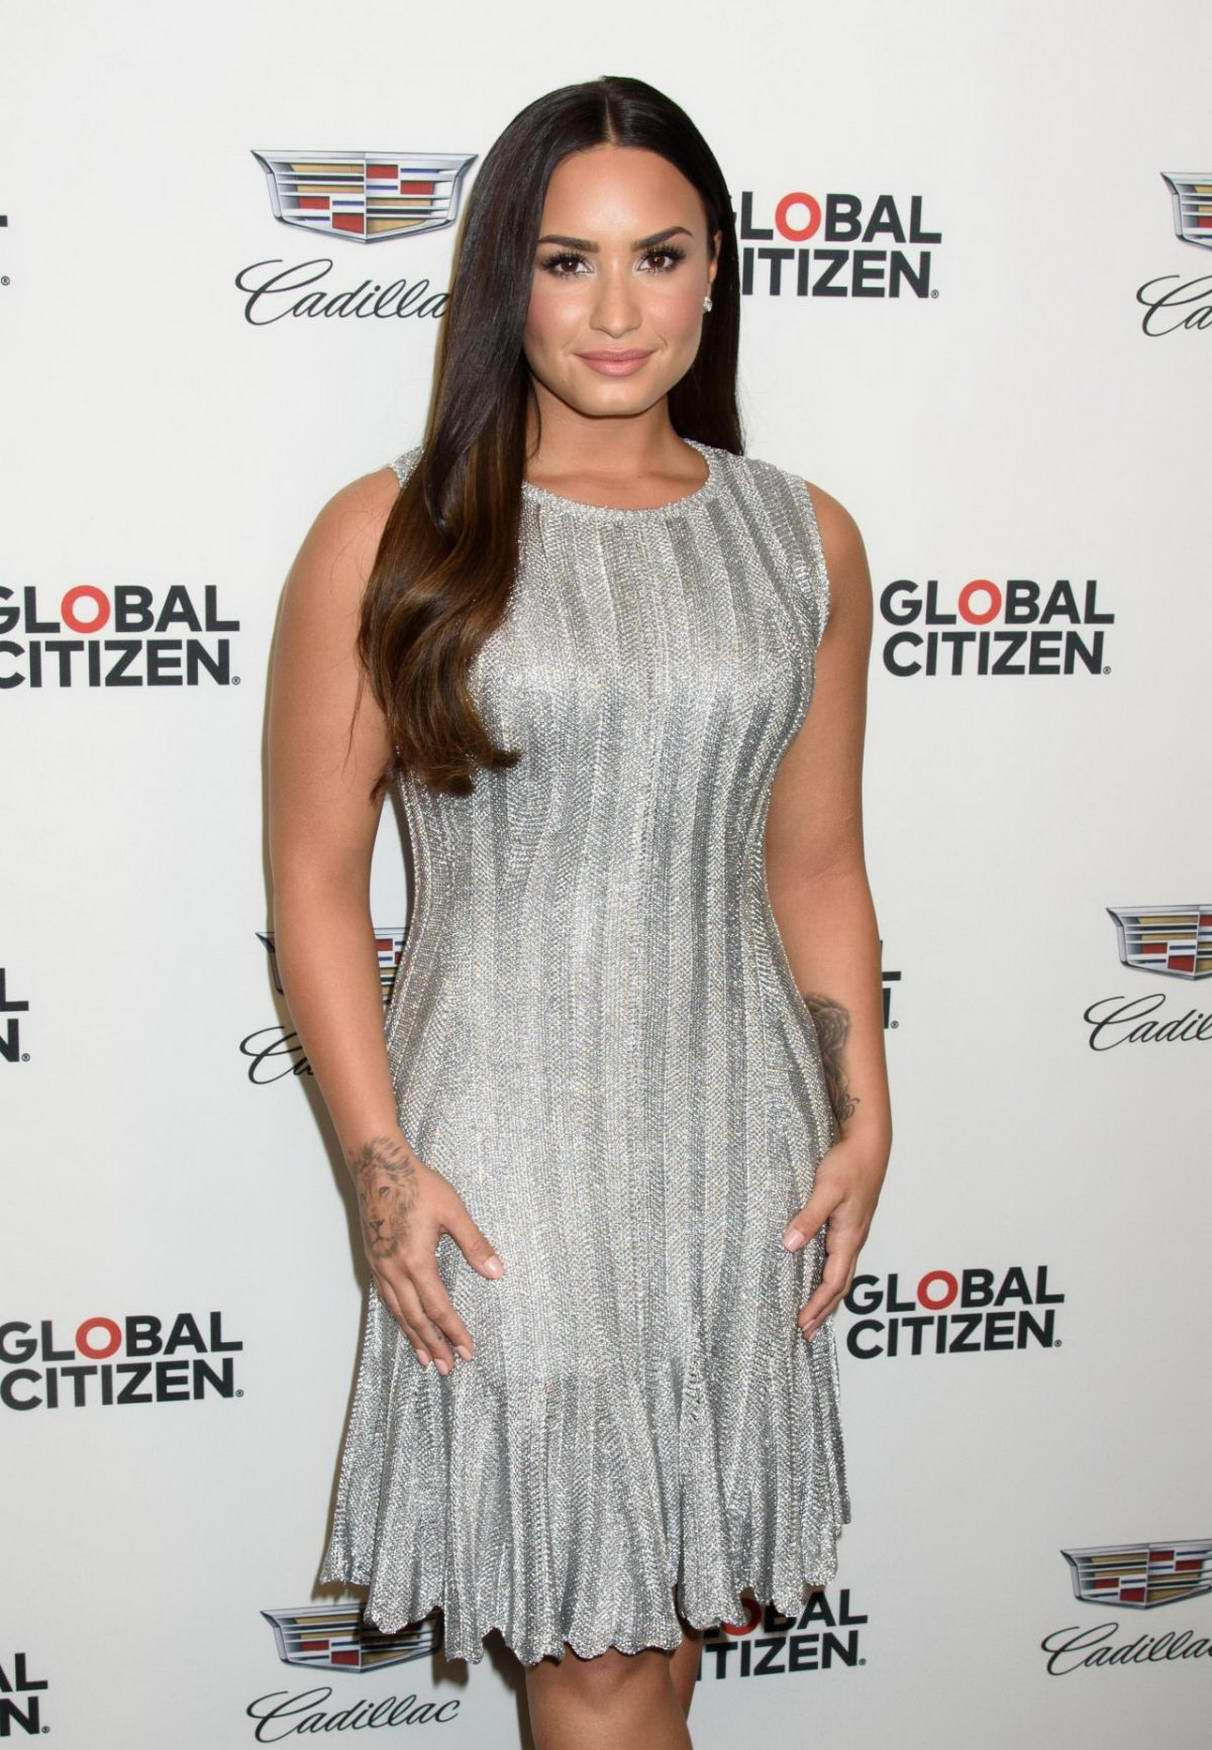 Demi Lovato arrives at Global Citizen and Cadillac House present Demi Lovato in Concert in New York